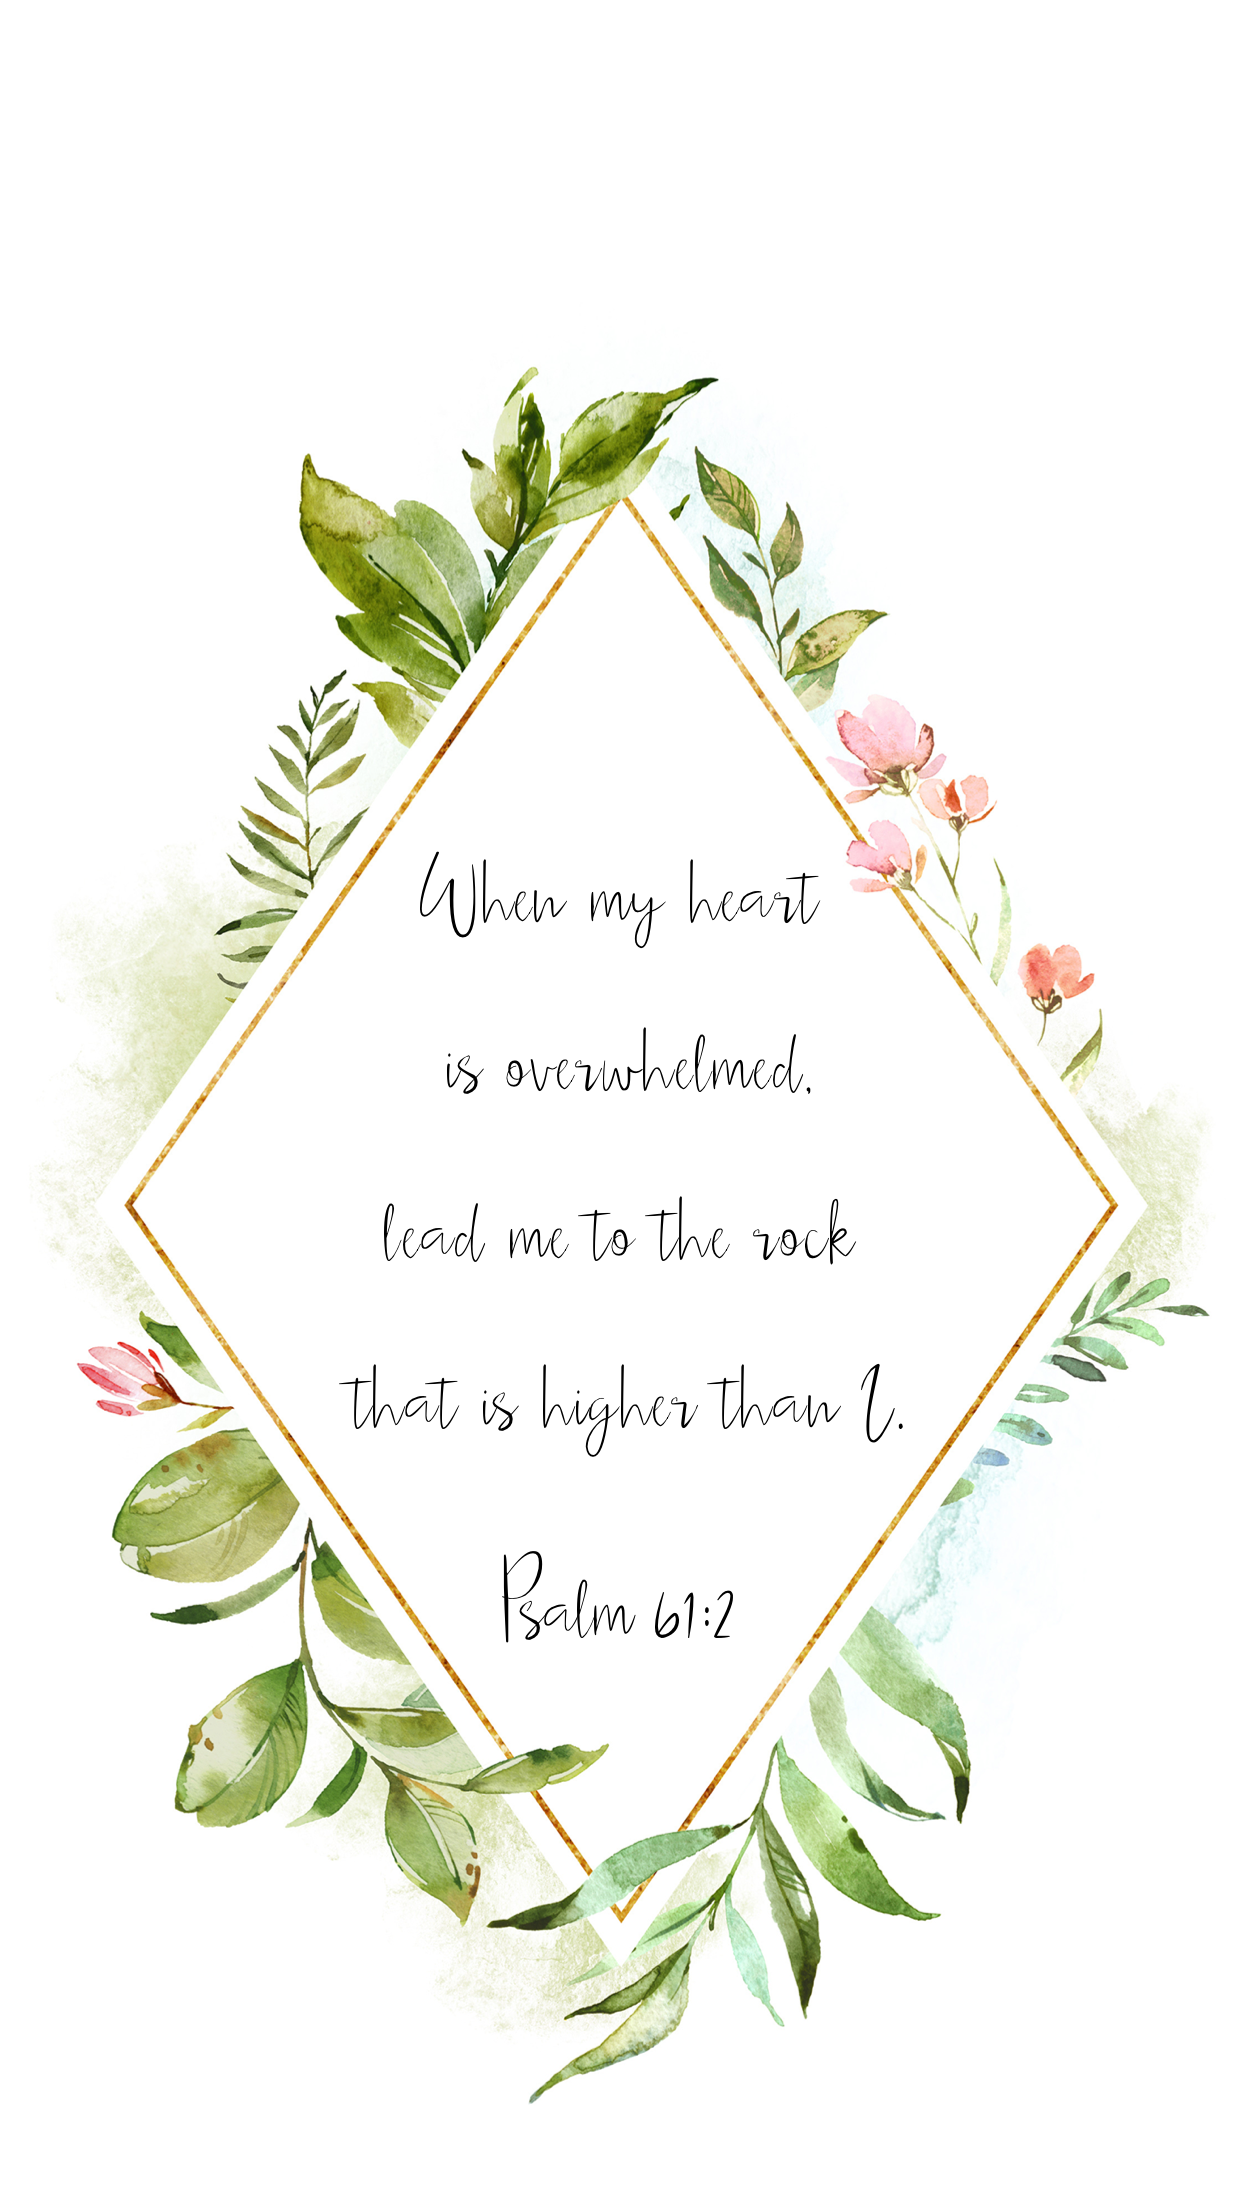 Psalm 612 Christian Bible Verse IPhone Wallpaper